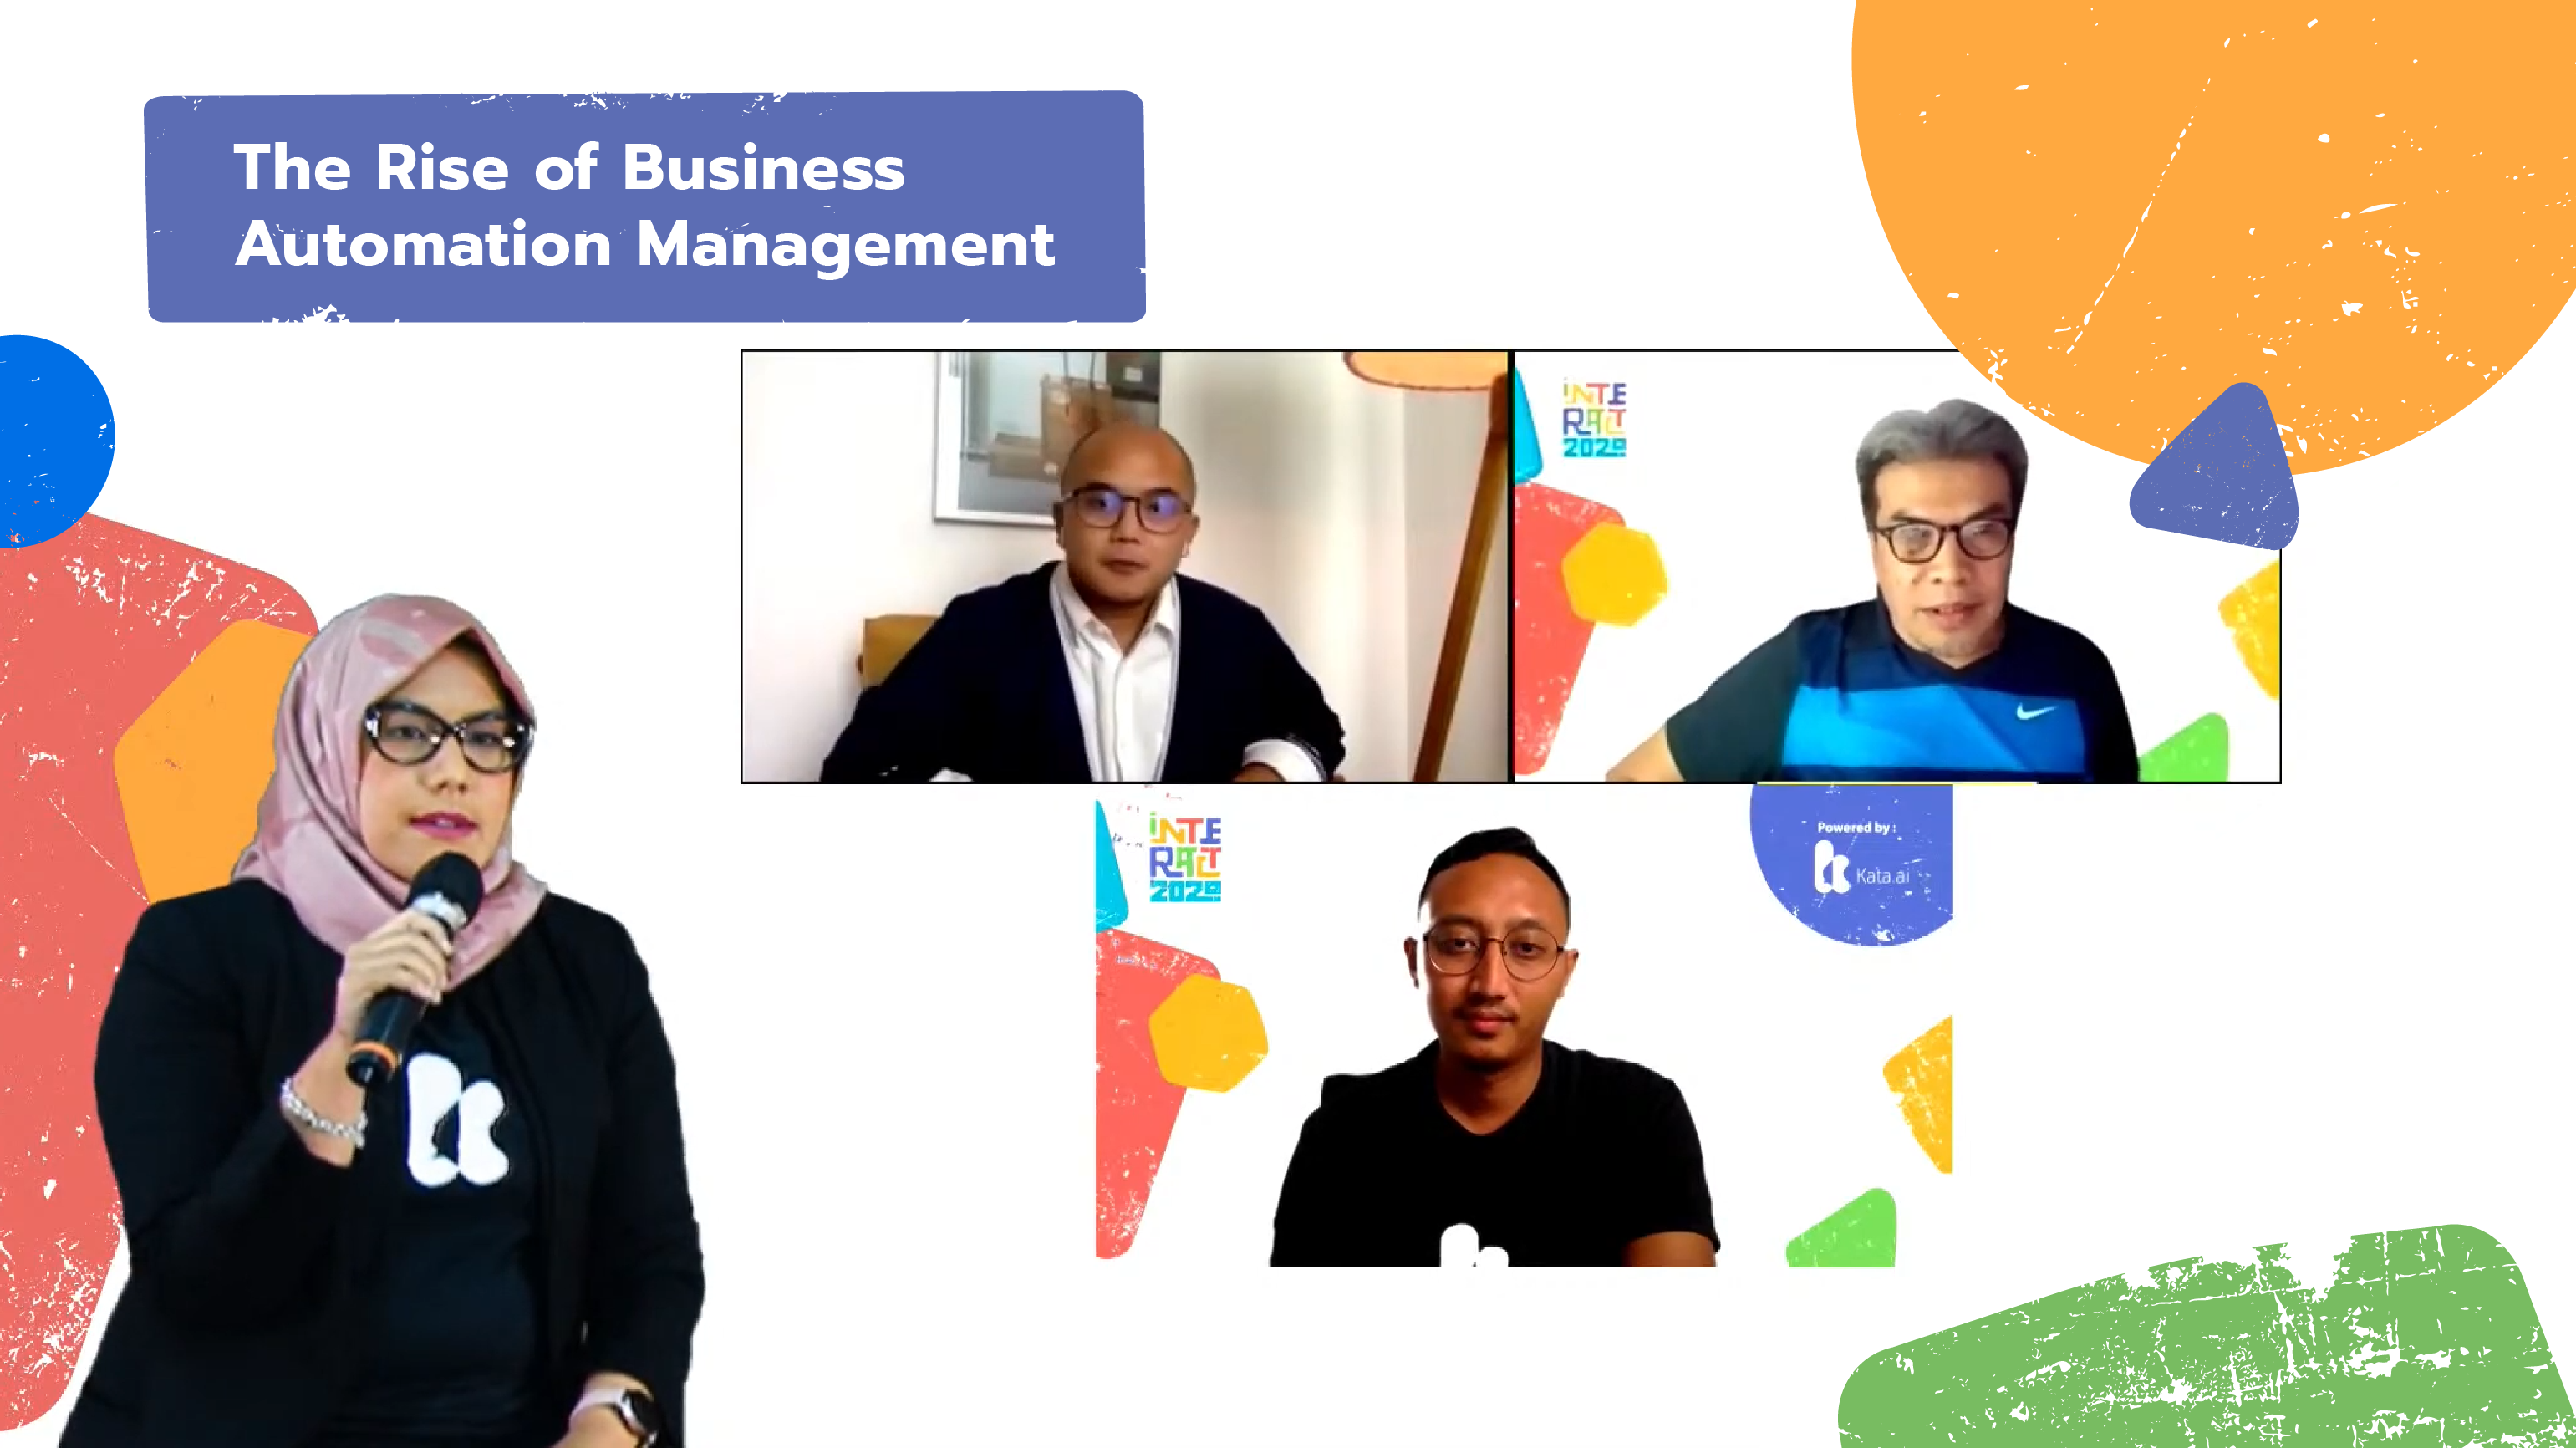 INTERACT 2020's first panel session discussed about the rise of business automation management with Kata.ai COO Wahyu Wrehasnaya, Mikro Investindo Utama CEO Busi Satria Isman, and Toko Kopi Tuku founder Andanu Prasetyo